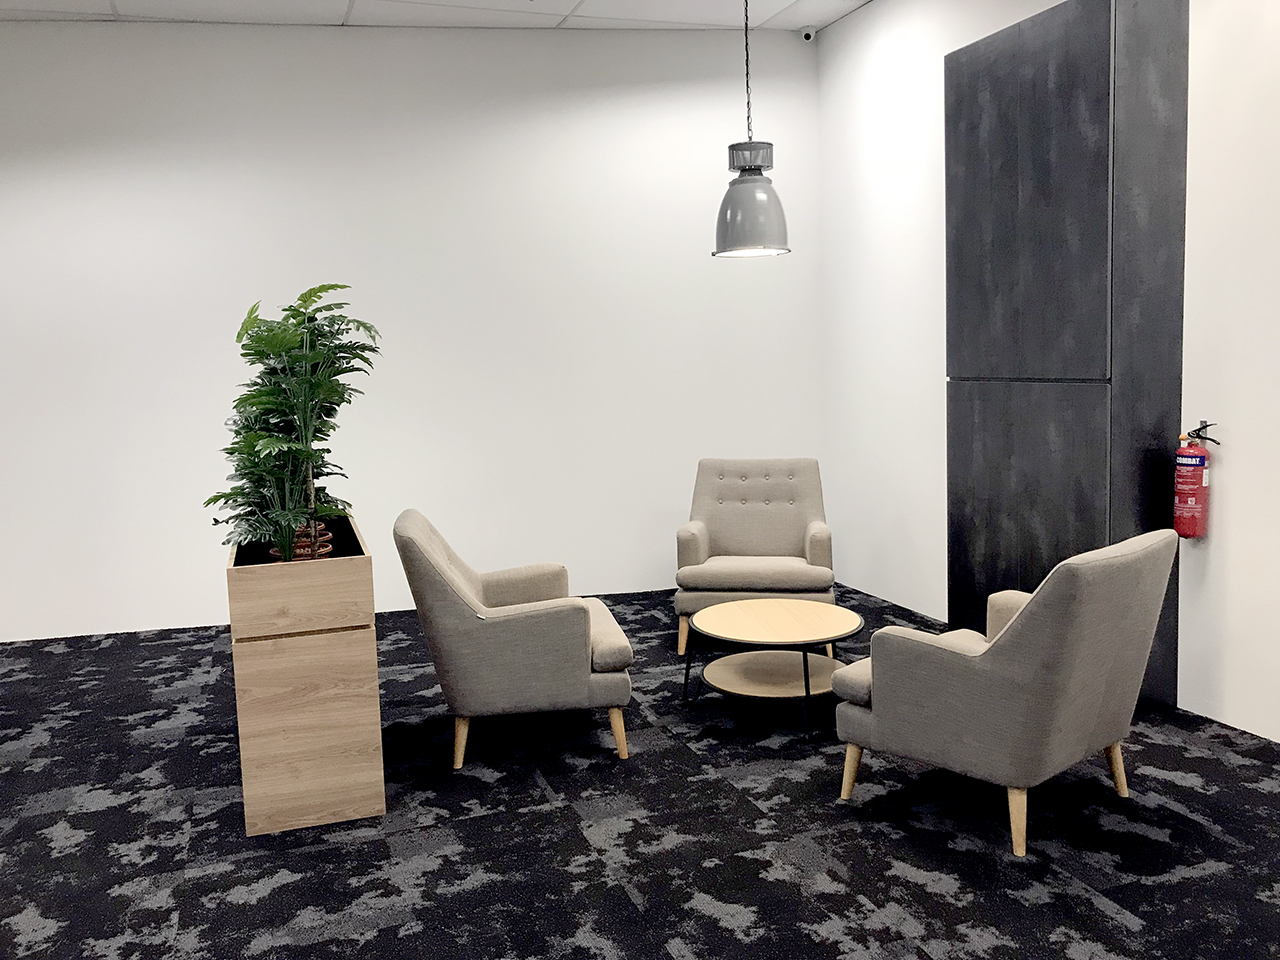 Tedirect Pte Ltd (Level 6) - Viva Business Park | Product Seen: [Mosses Lounger & Levi Coffee Table – Big]